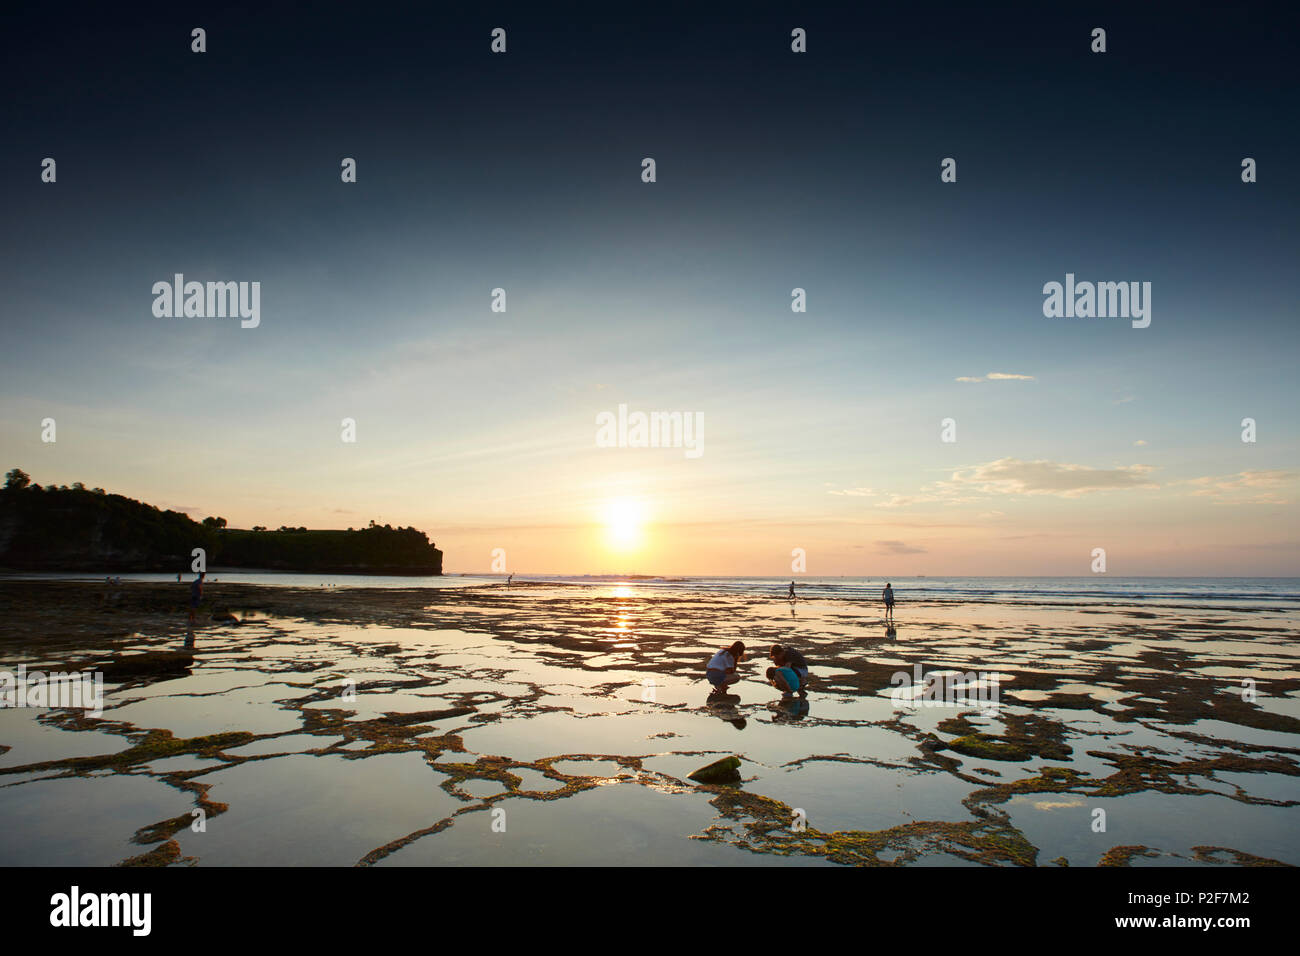 Beach at low tide, Balangan, Bali, Indonesia - Stock Image